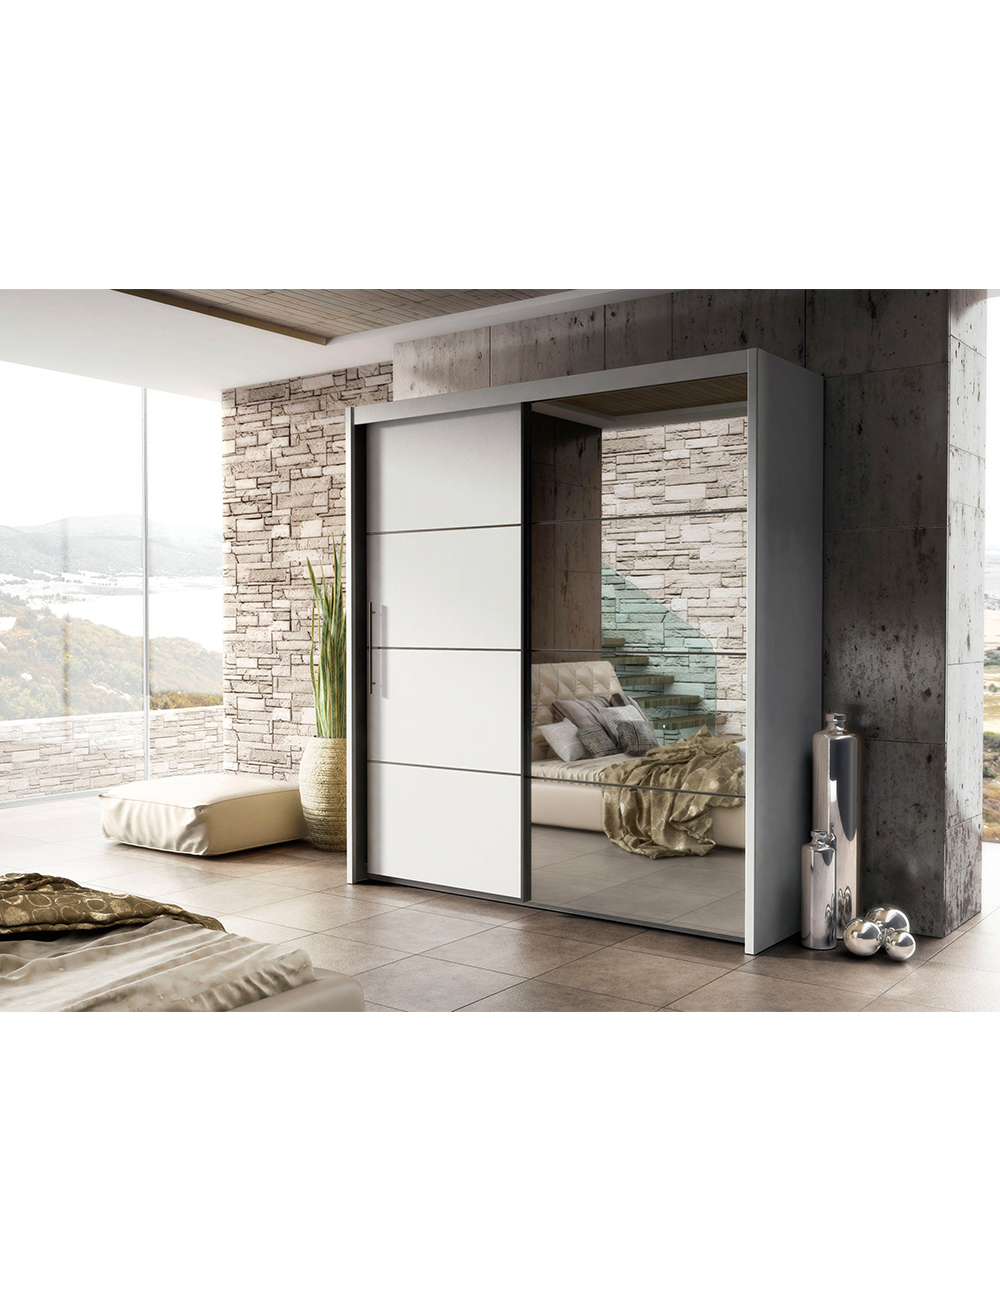 kleiderschrank mateo mit spiegelt r b 200 cm. Black Bedroom Furniture Sets. Home Design Ideas